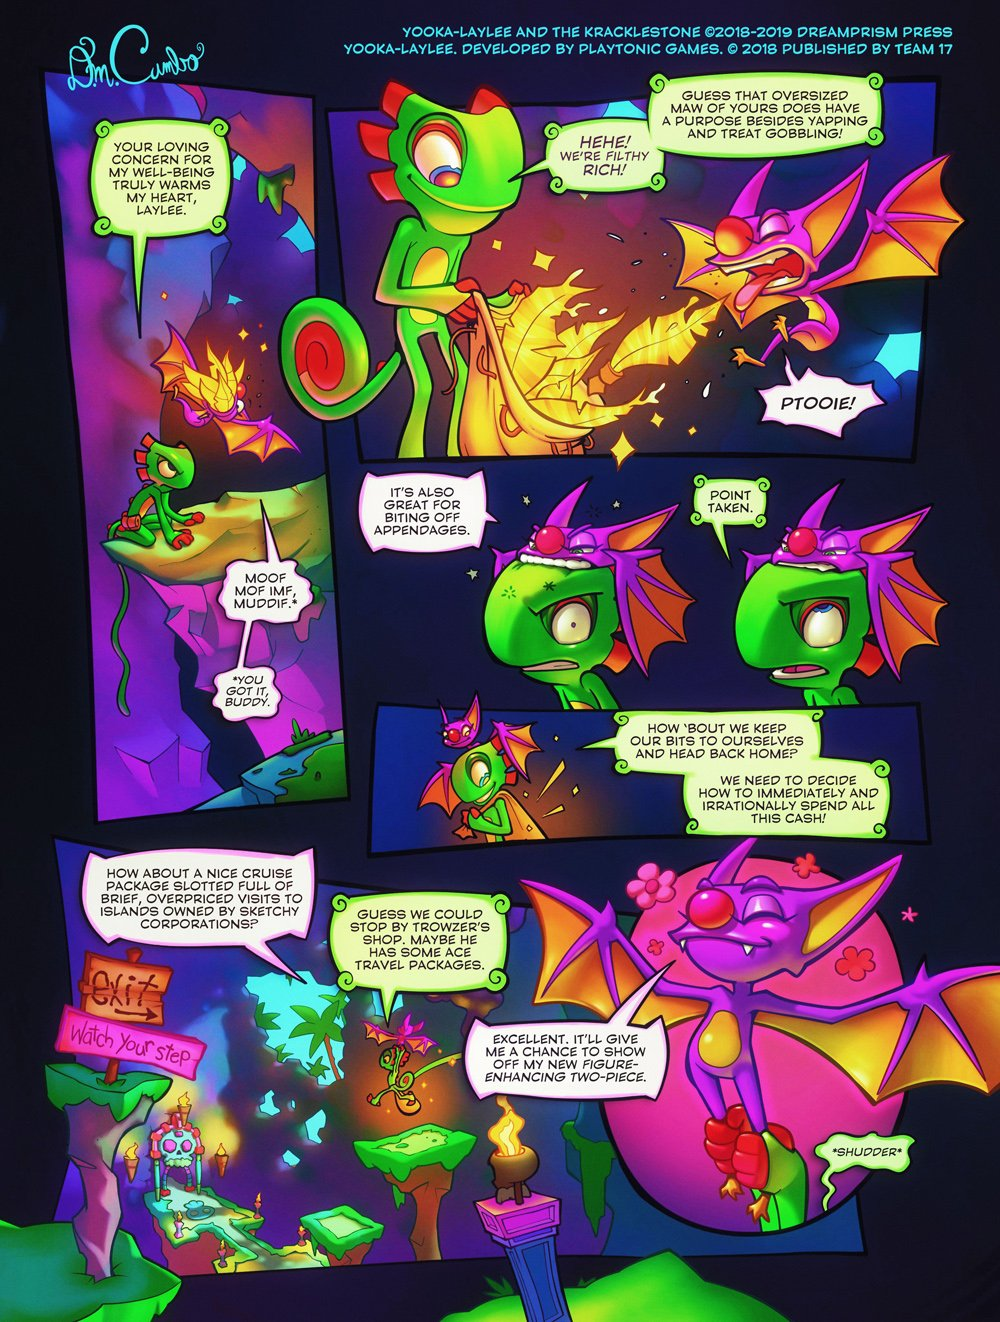 Yooka Laylee Getting Kickstarter Campaign For Spin Off